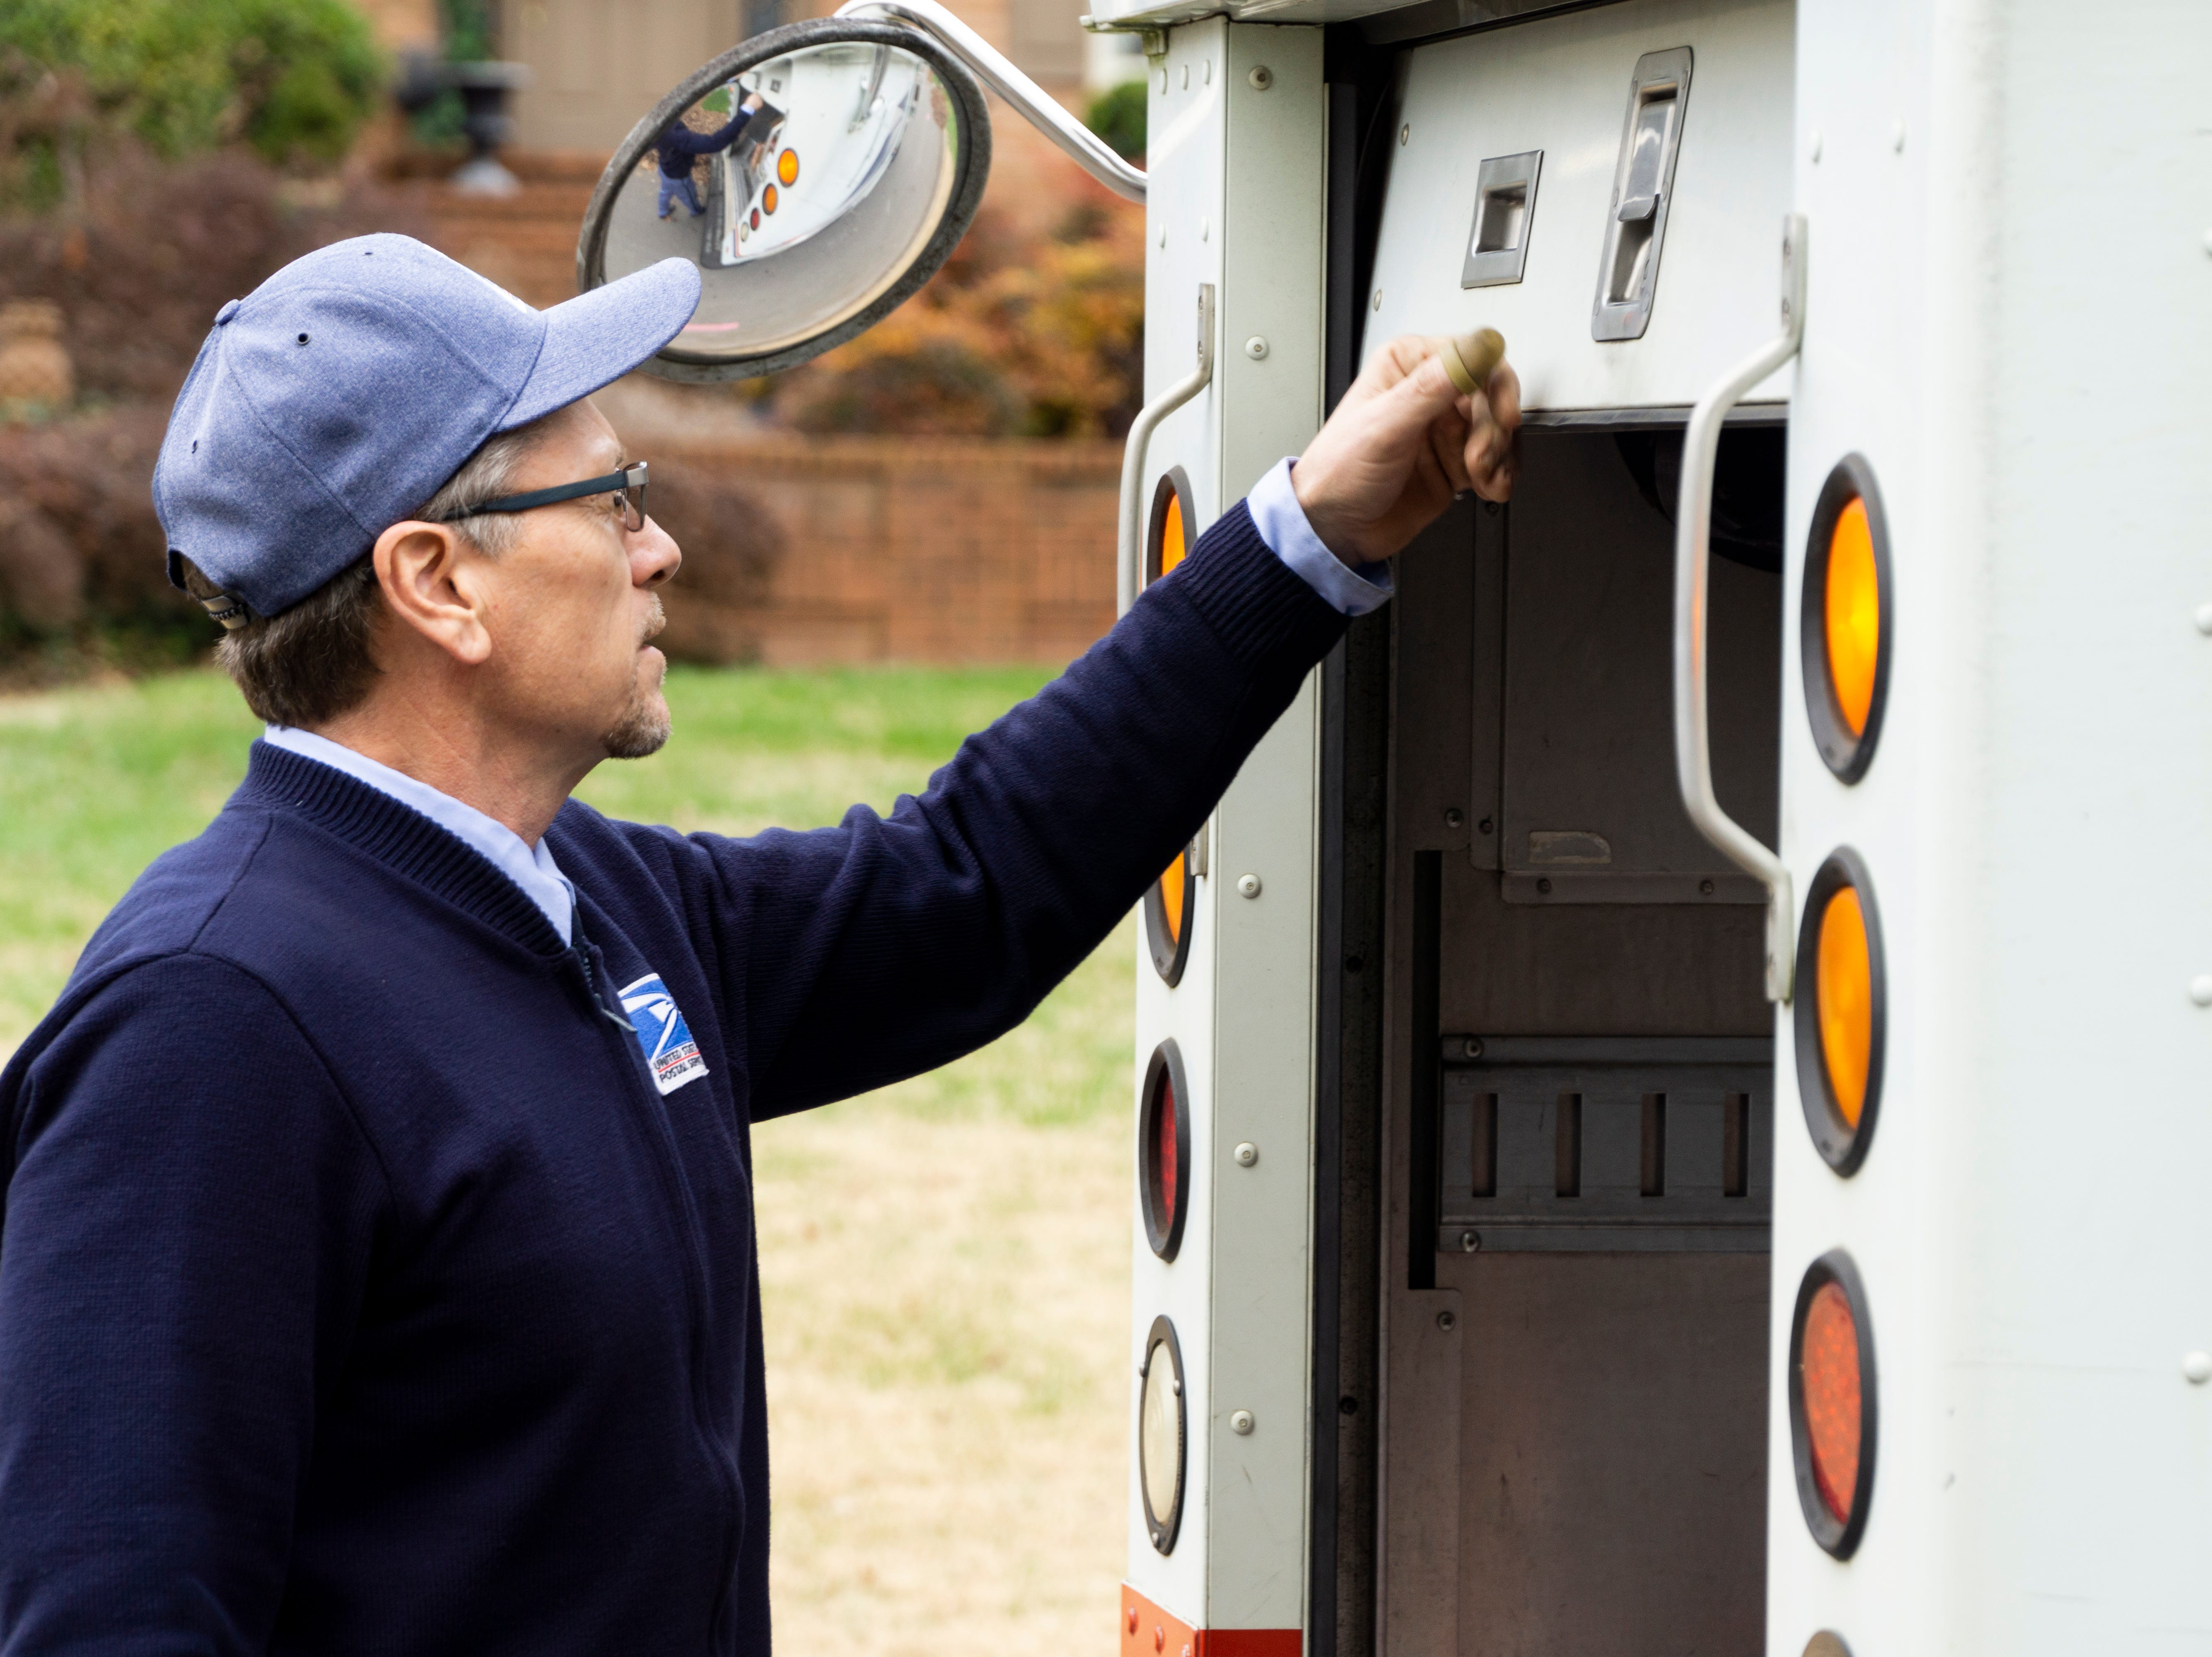 Bryan Lay shuts the door of his mail truck while delivering packages in West Knoxville. Lay has been delivering mail in Knoxville for more than 20 years.